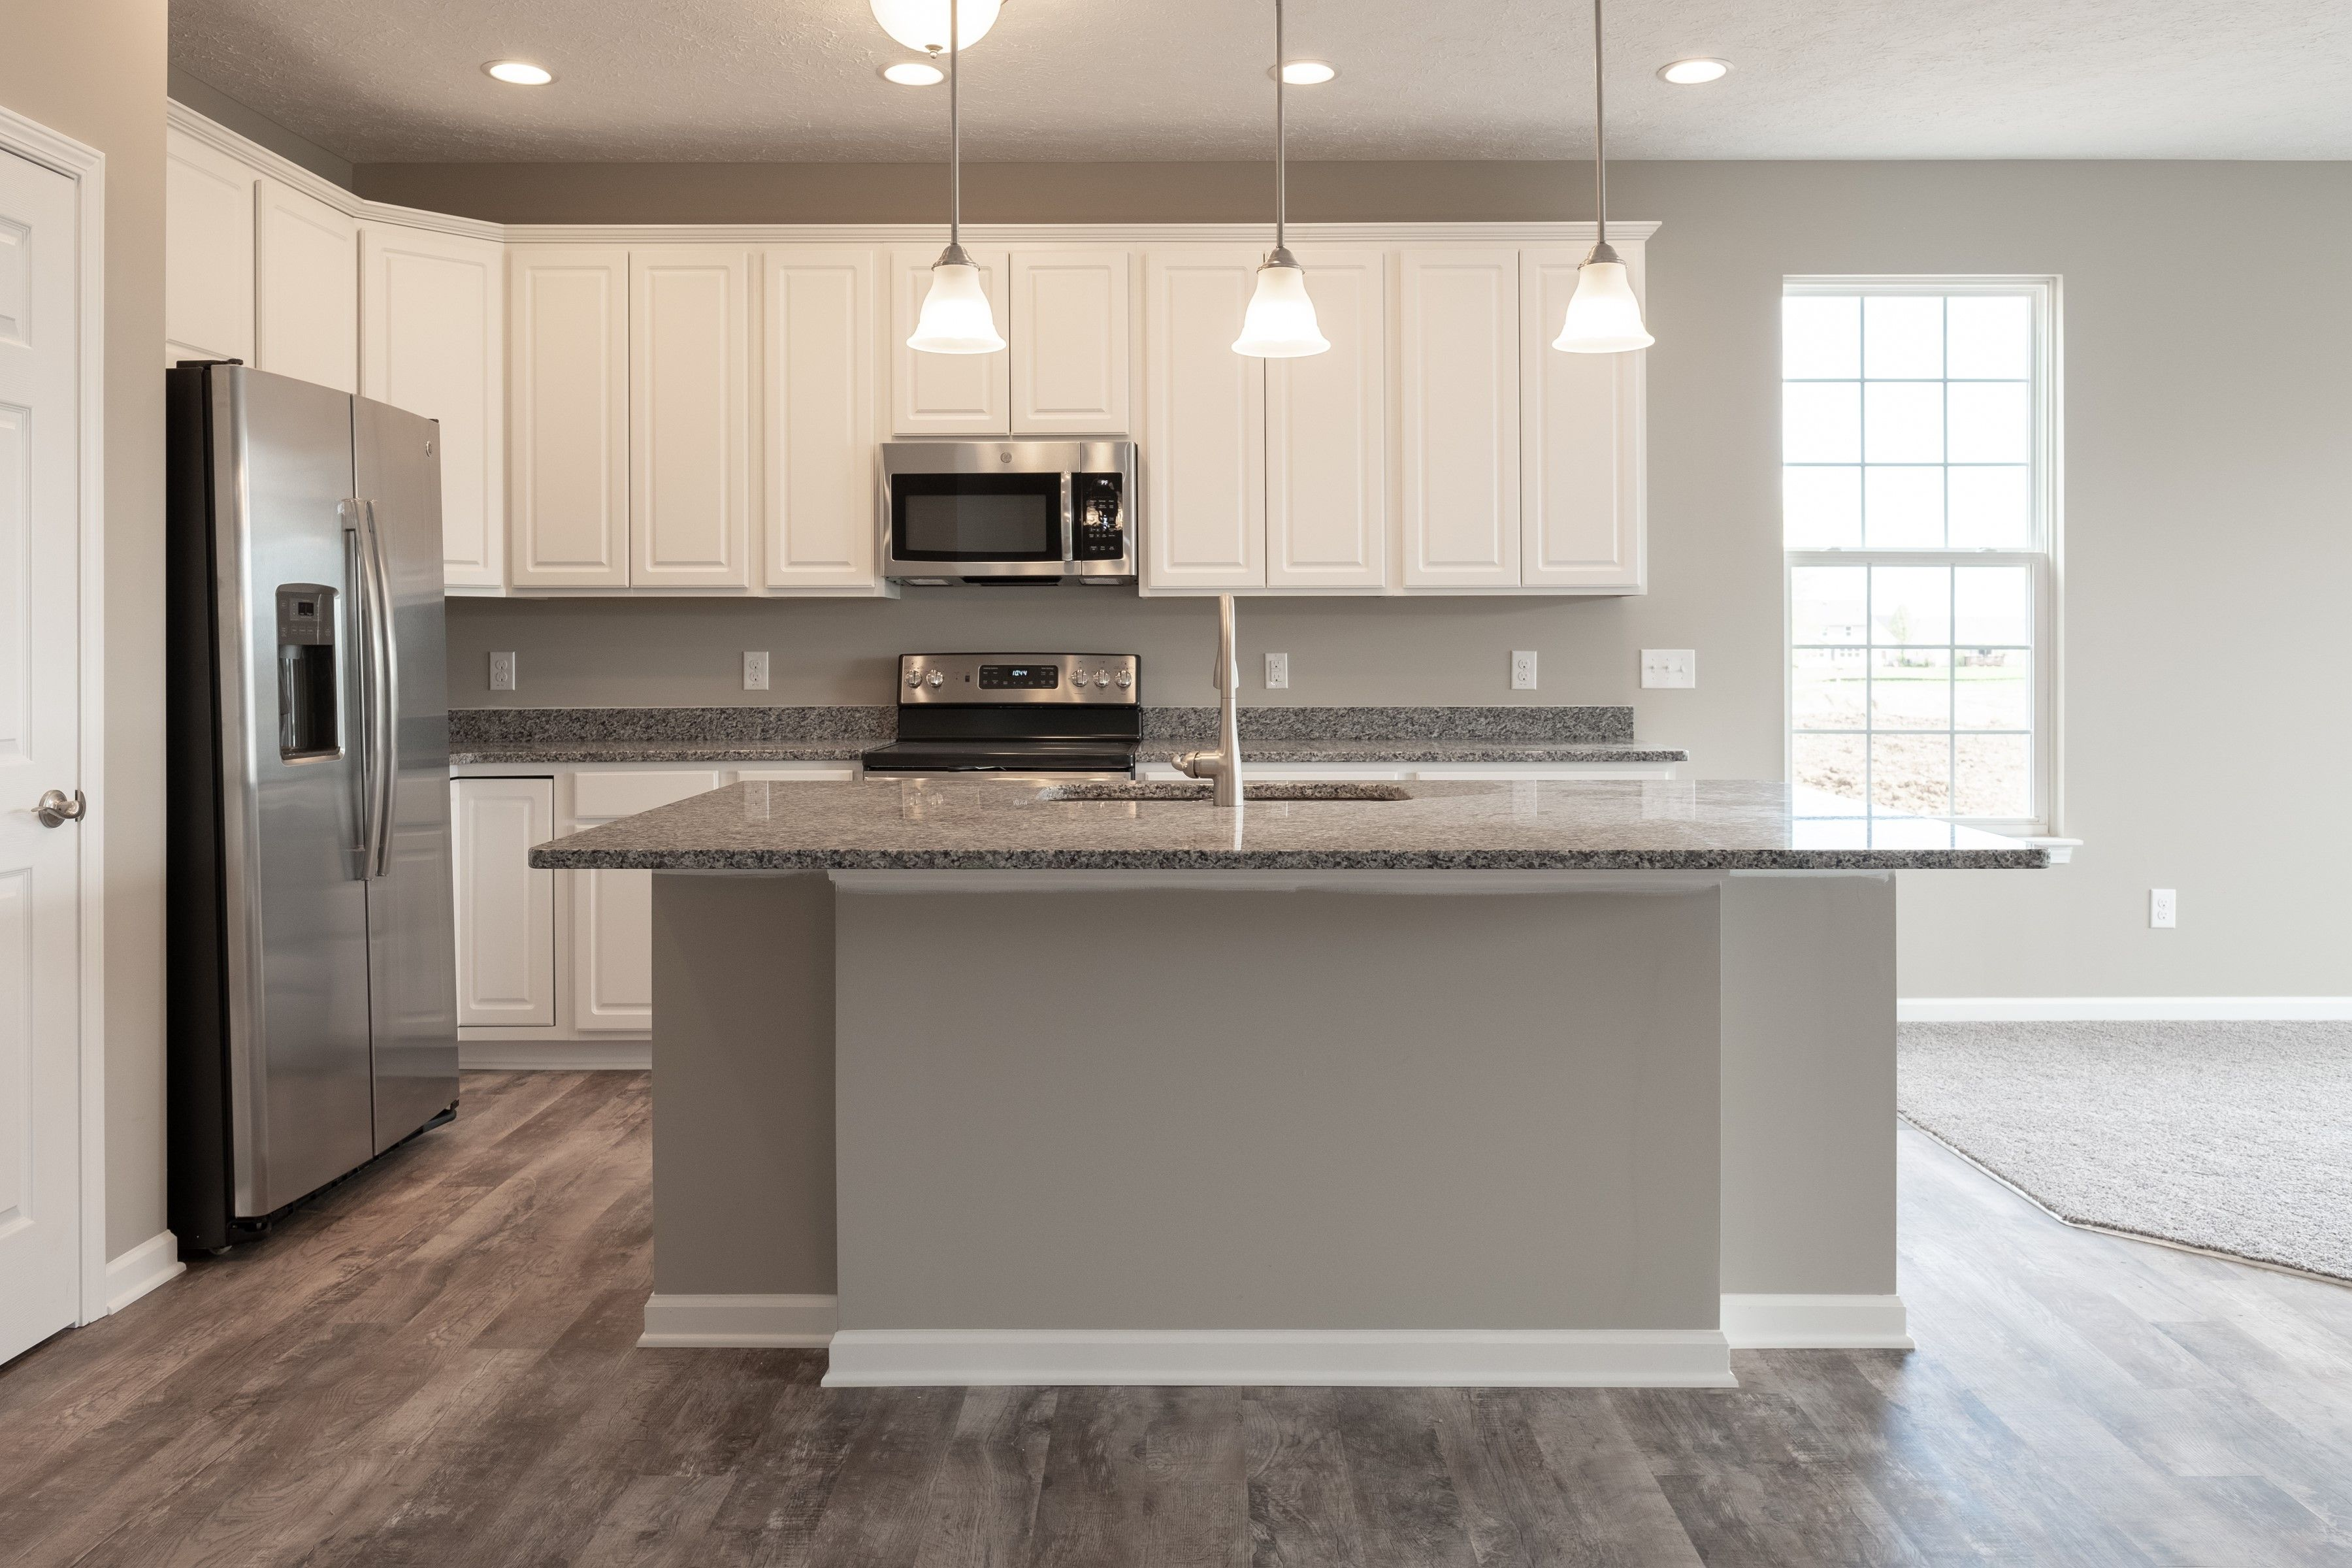 Kitchen featured in the Athens By K. Hovnanian's® Four Seasons in Eastern Shore, MD